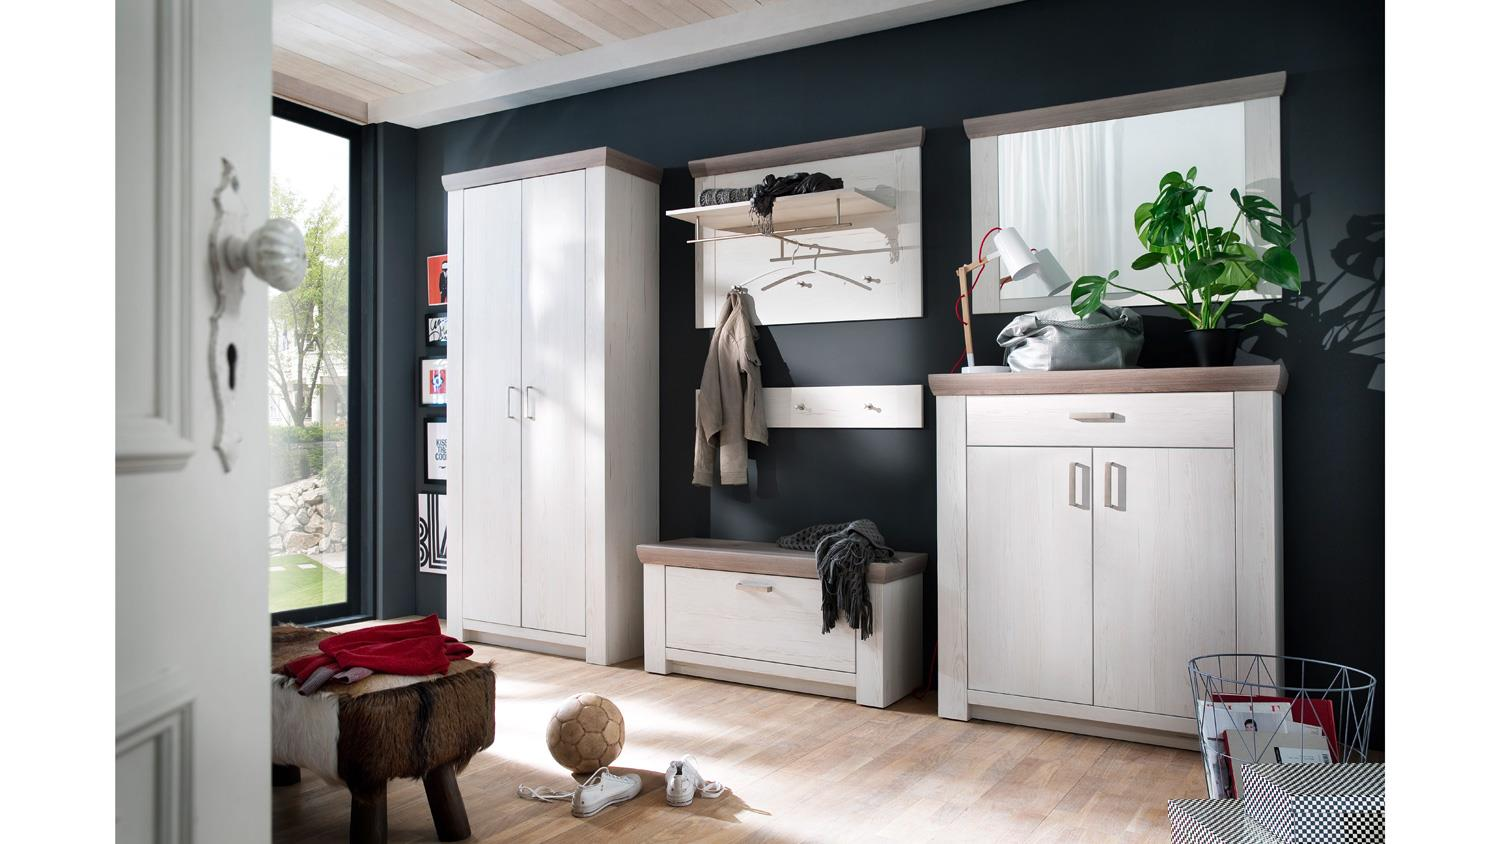 garderobe 2 bozen flurm bel komplett set pinie wei und eiche landhaus. Black Bedroom Furniture Sets. Home Design Ideas